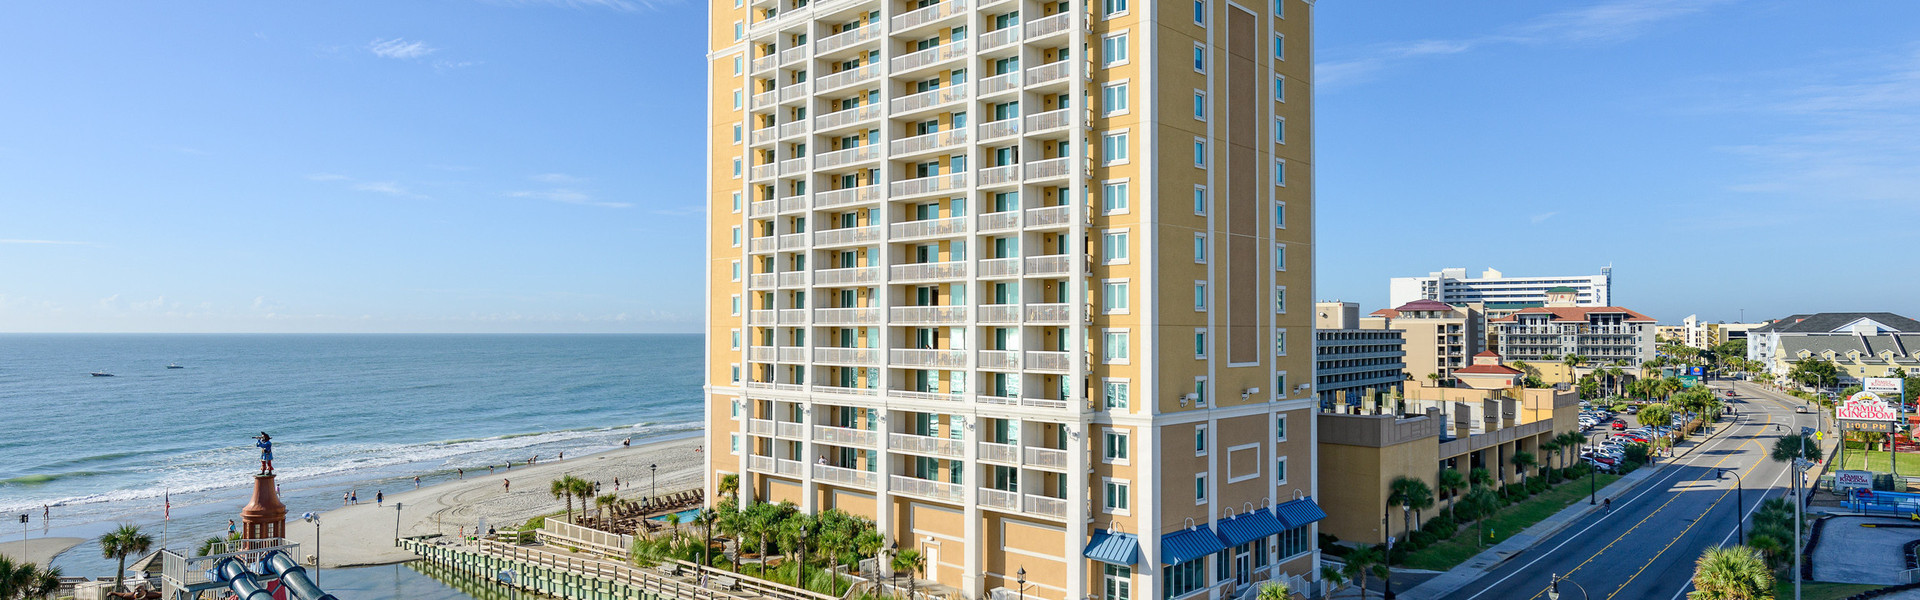 4 Days 3 Nights $99 Myrtle Beach Family Vacation Packages | Sunset Over Ocean